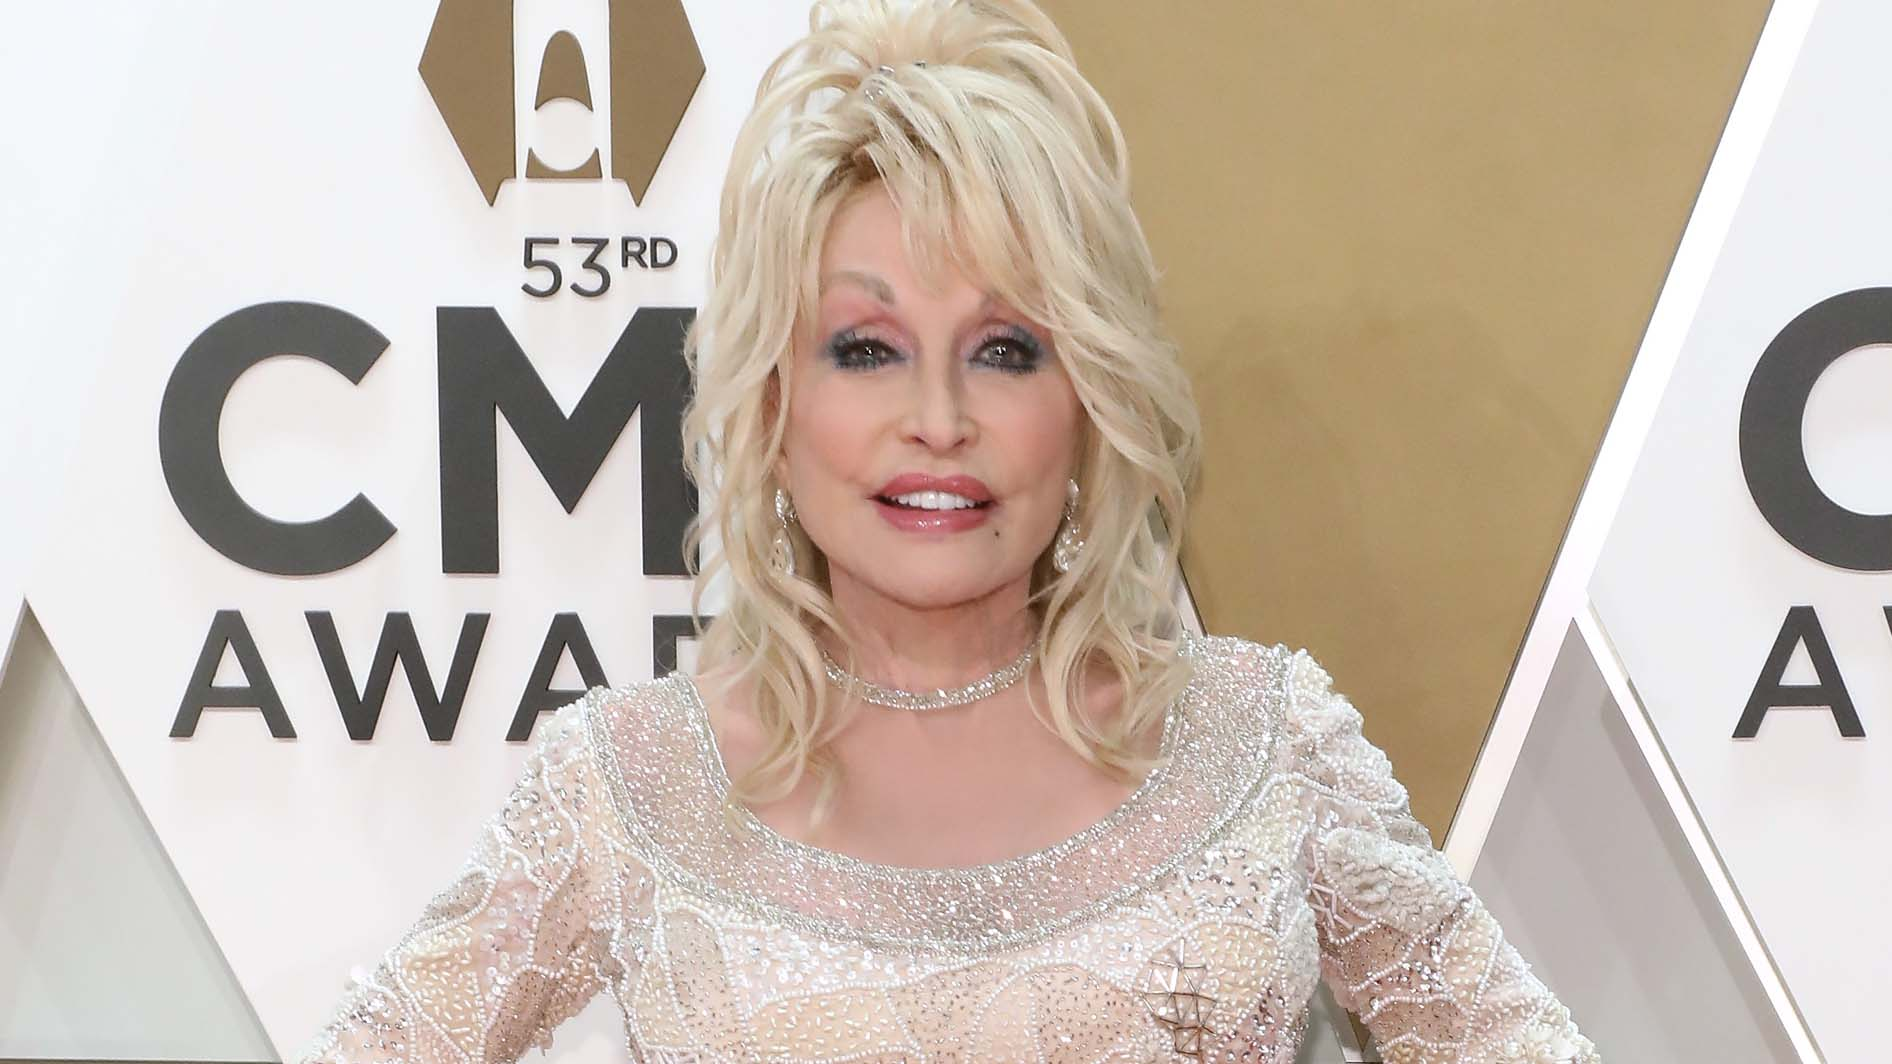 Dolly Parton's faith compelled her COVID-19 research donation, won't jump the line to get vaccine